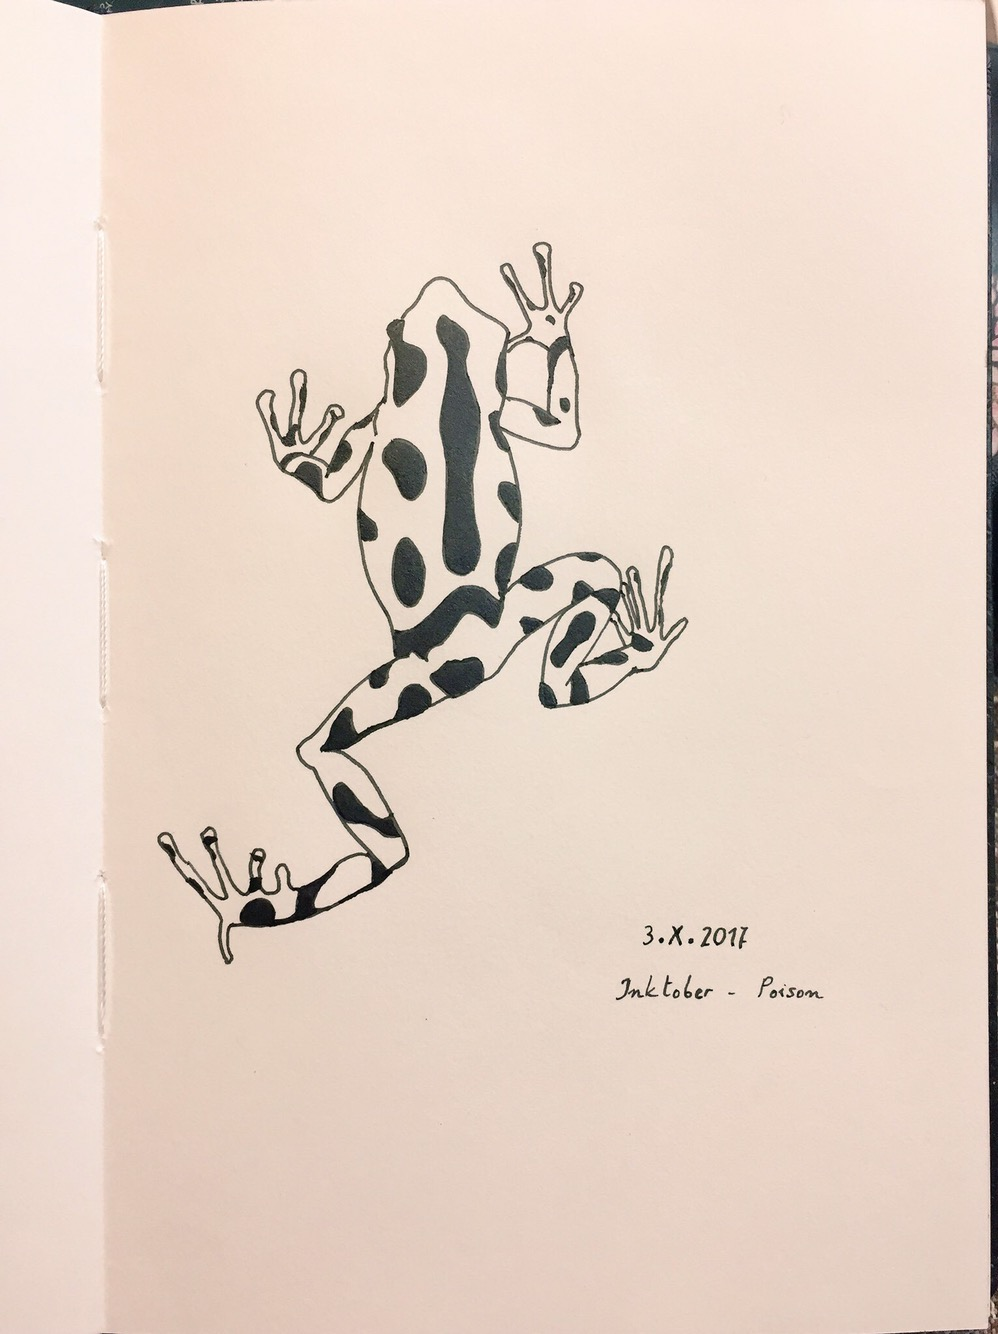 Poisonous frog viewed from above, in black and white, with black spots